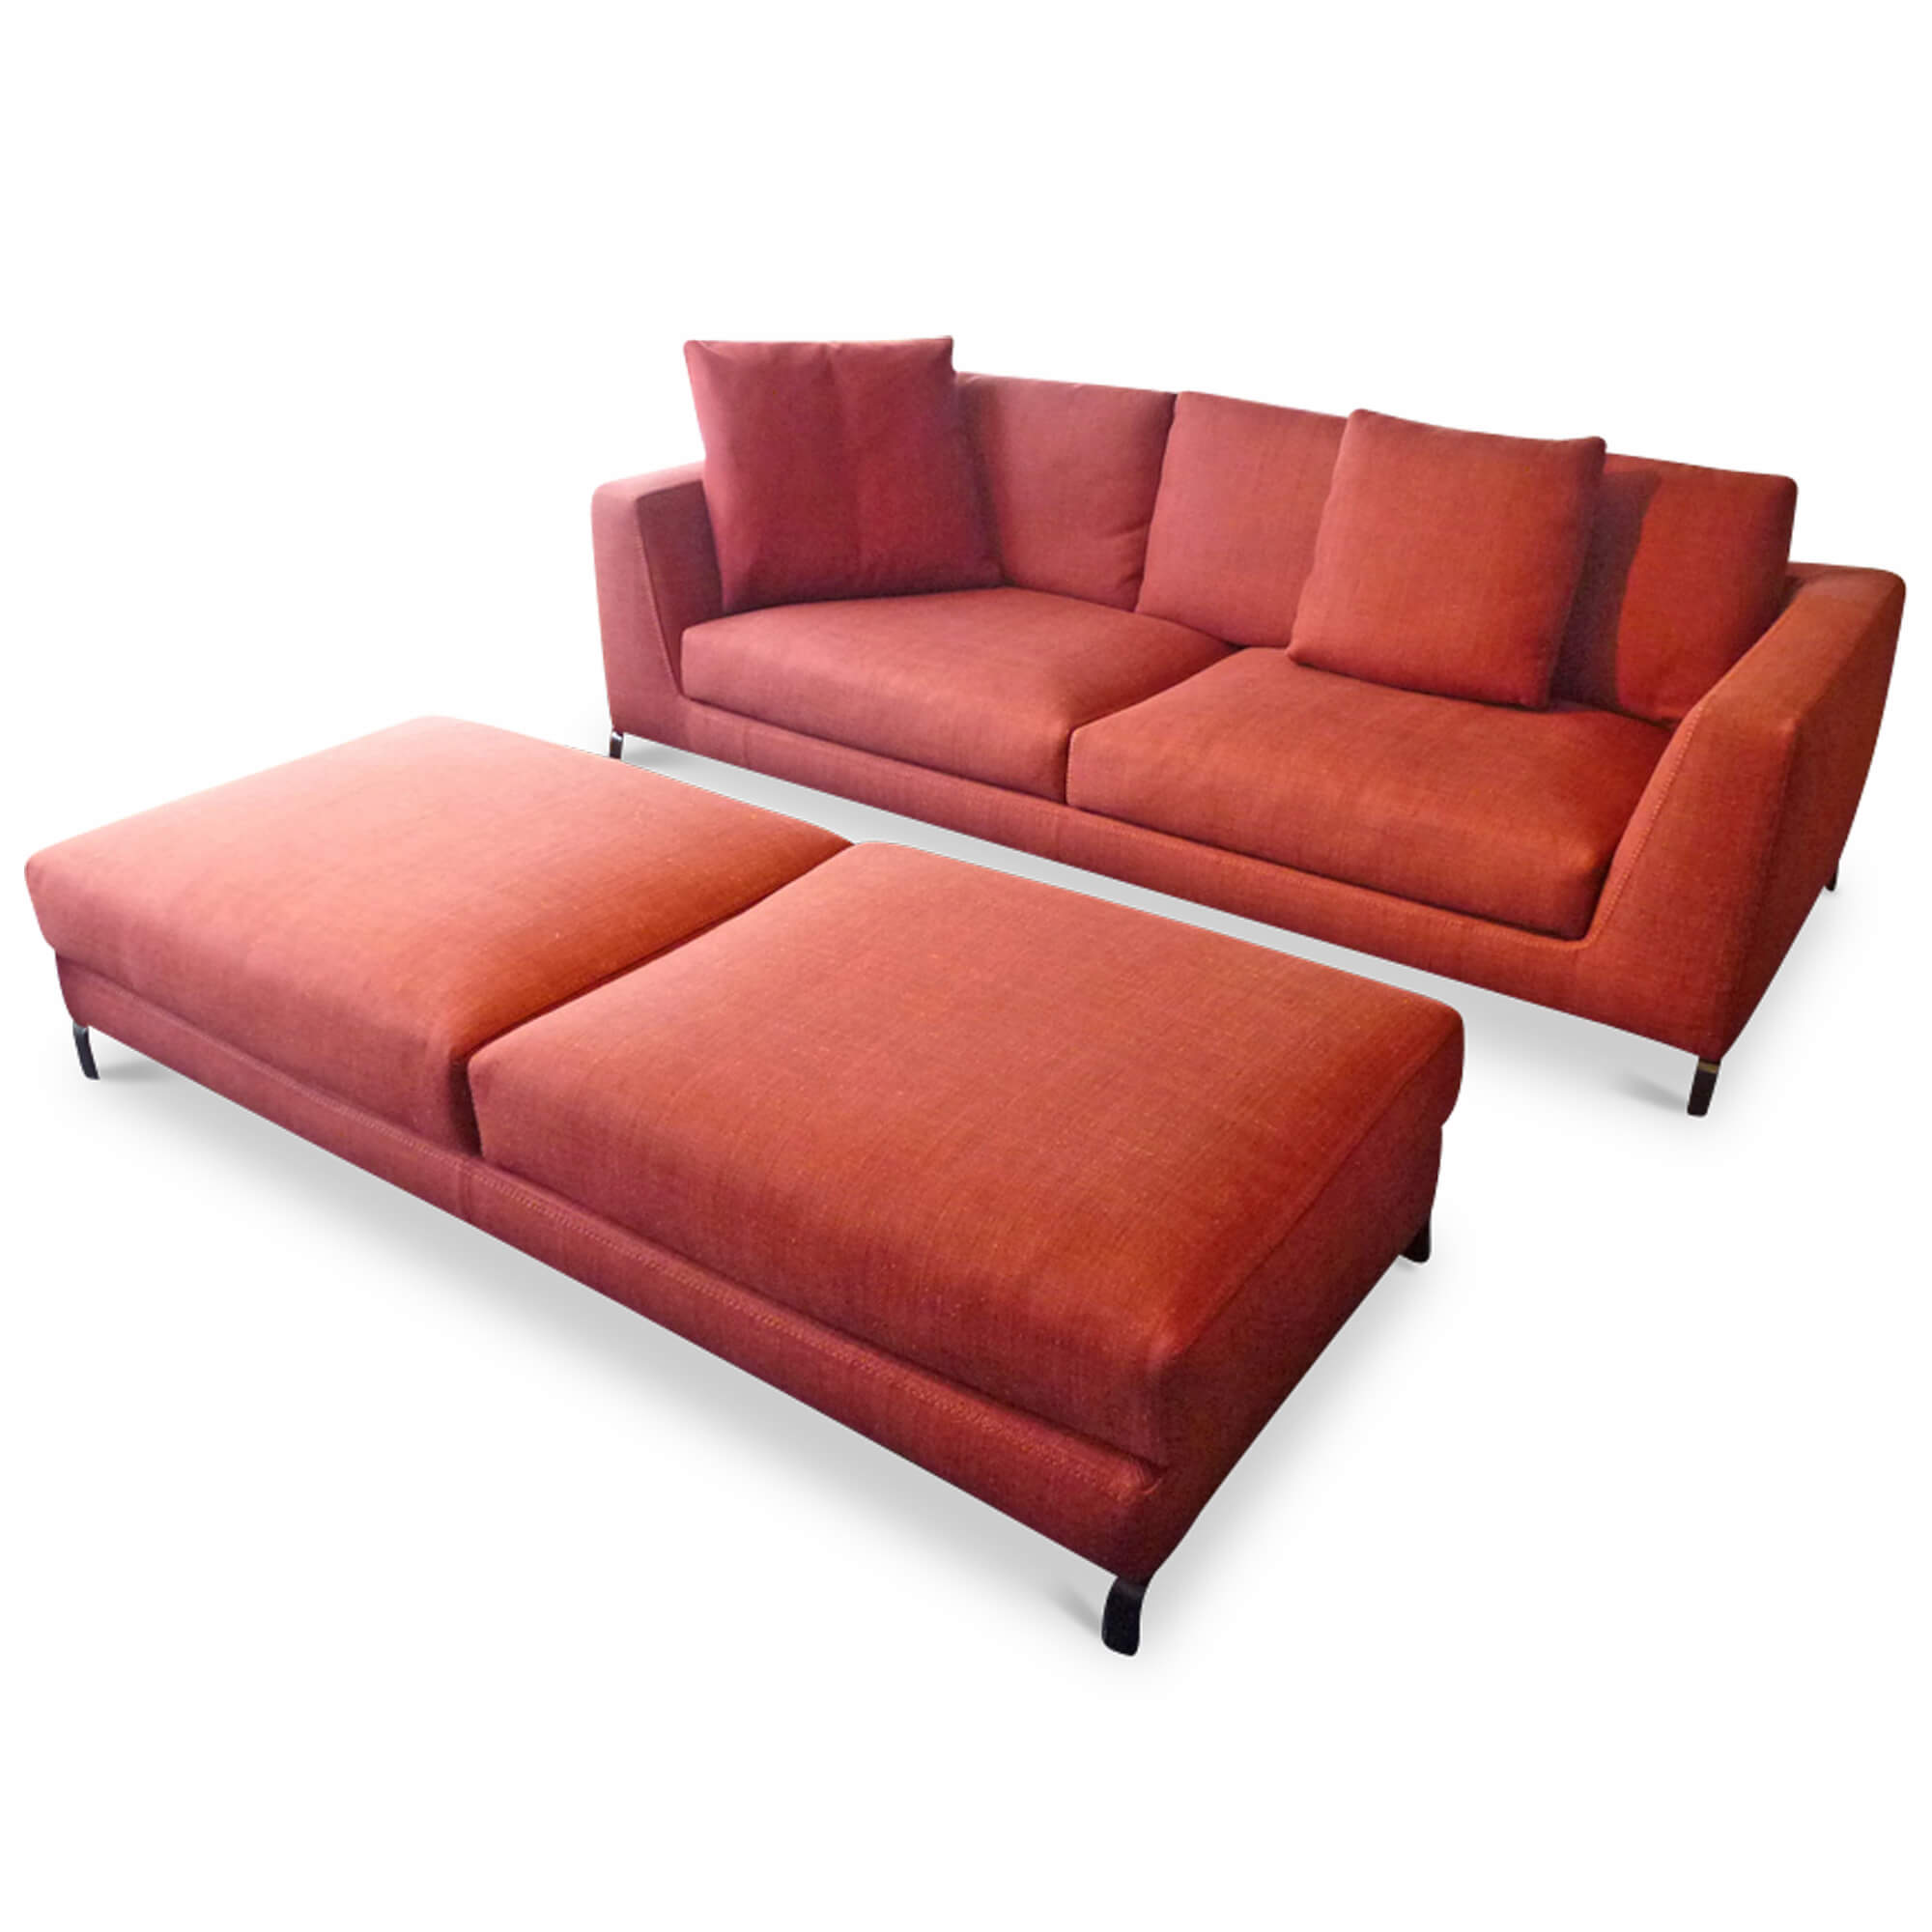 b b italia designer sofa ray mit hockerbank stoff chrom schwarz rot 4260552923820 ebay. Black Bedroom Furniture Sets. Home Design Ideas